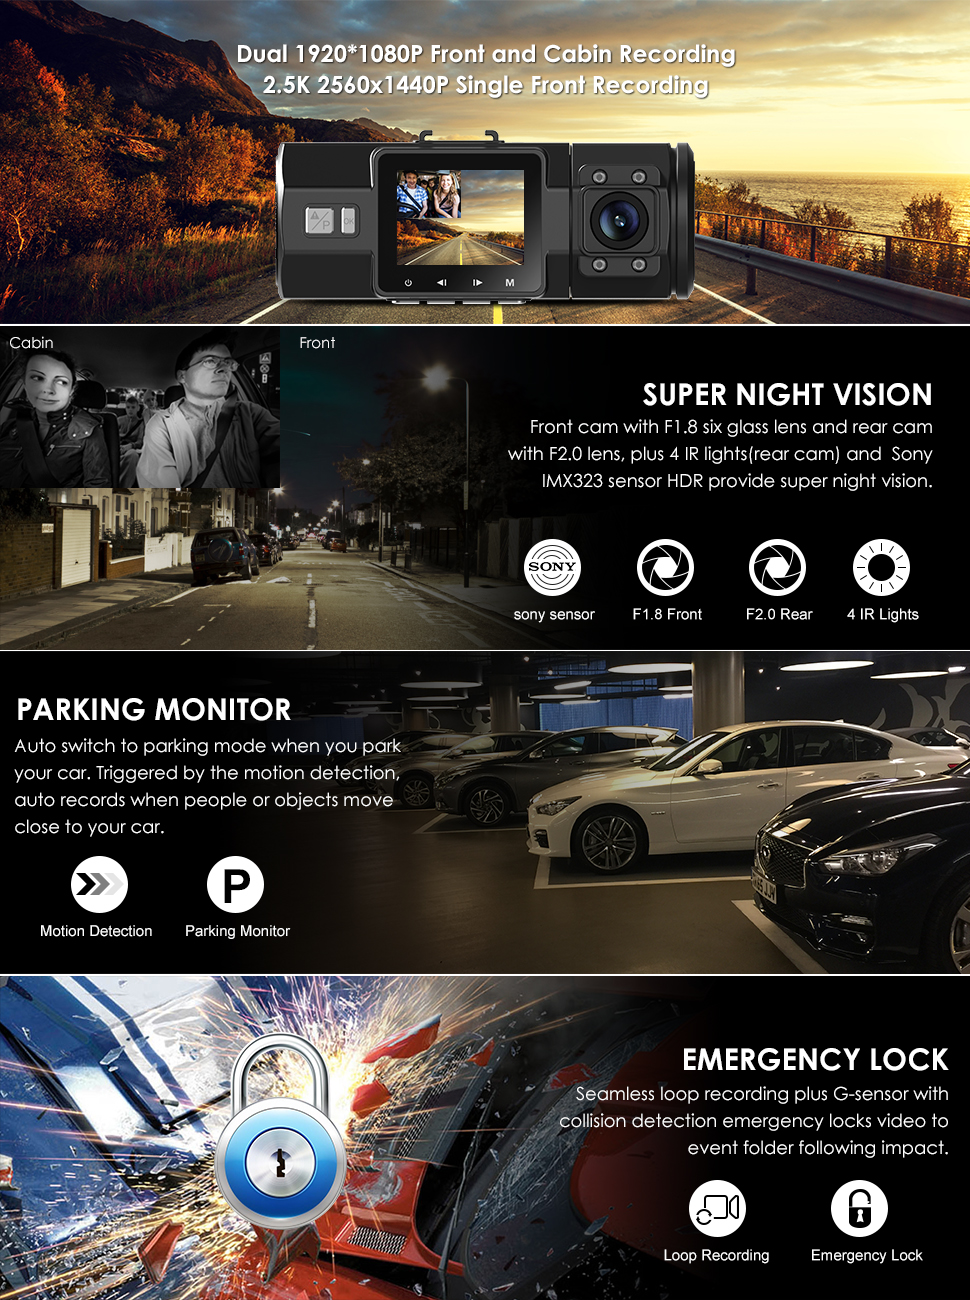 Vantrue N2 Pro Dual Dash Cam 1080p Front And Rear Dashcam For Casing Dvd Gt 6 Mm Single Double Uber Camera With Snapshot